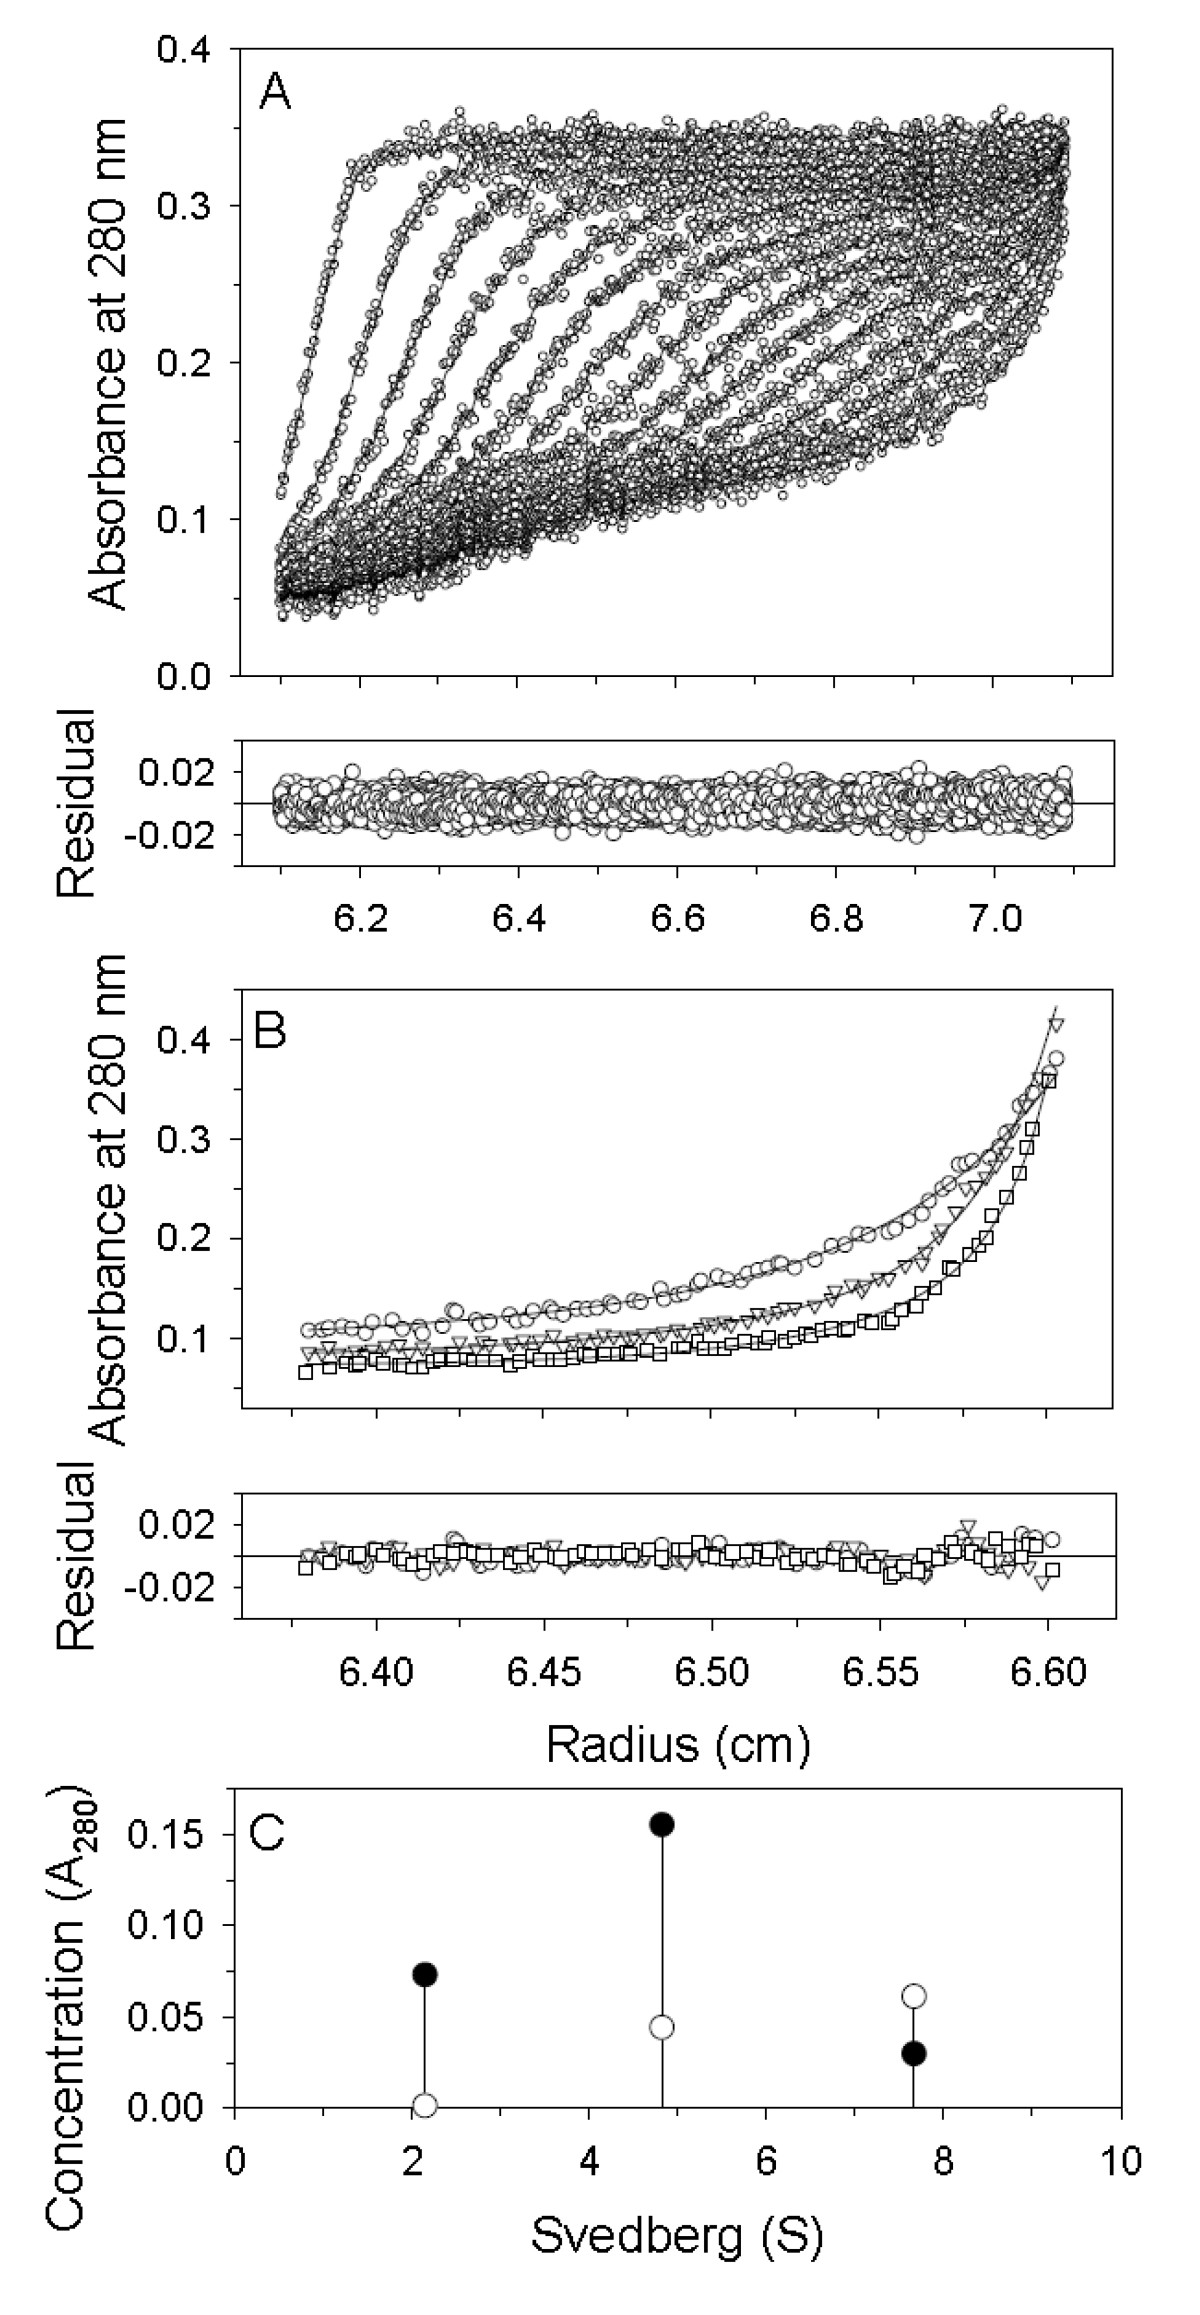 https://static-content.springer.com/image/art%3A10.1186%2F1423-0127-18-4/MediaObjects/12929_2010_Article_256_Fig3_HTML.jpg